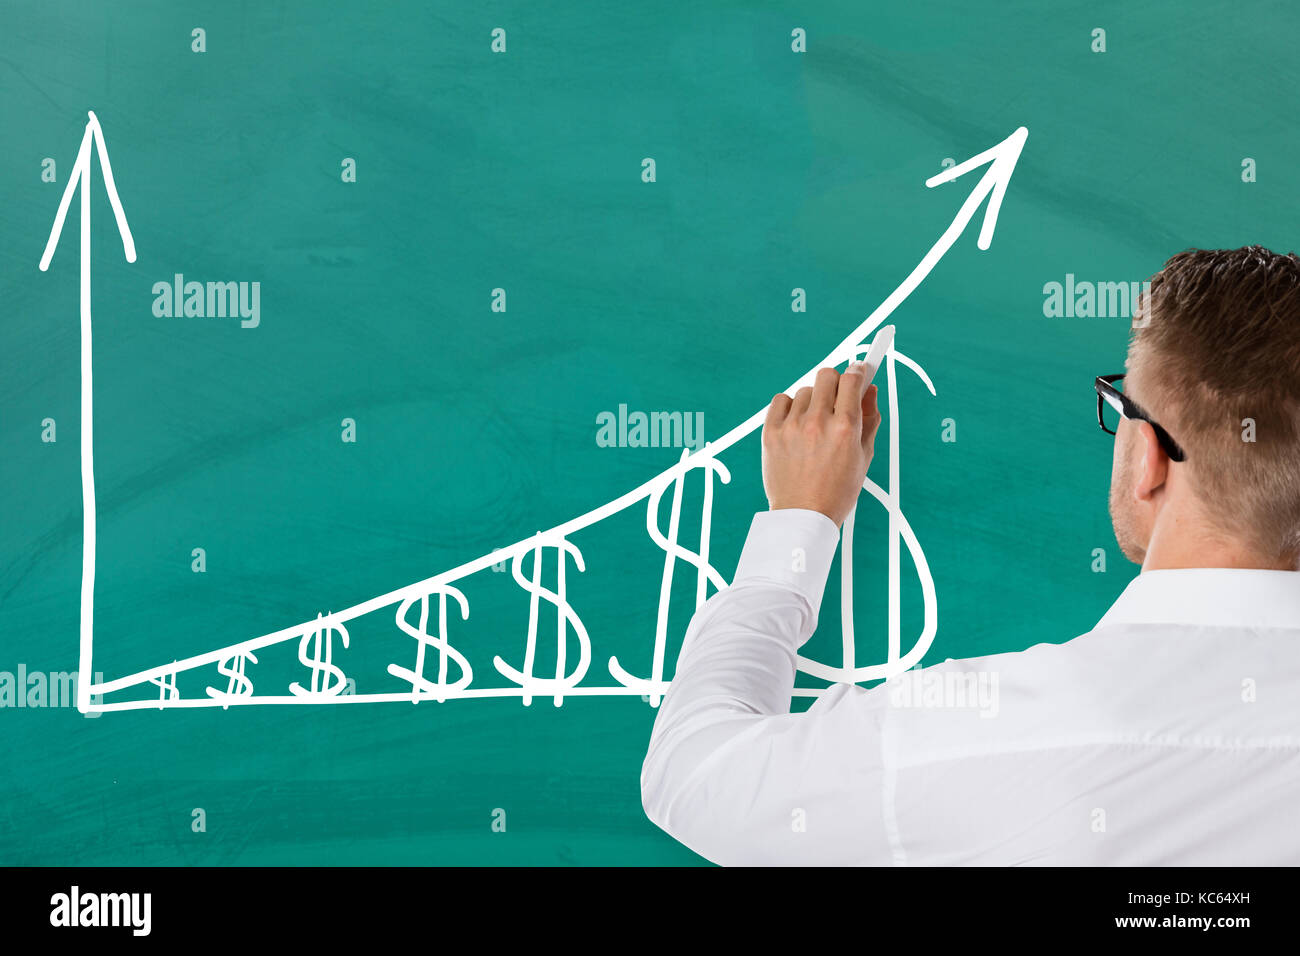 Businessman Showing Inflation Concept With Increasing Dollar Graph On Green Blackboard. Salary Growth Concept - Stock Image